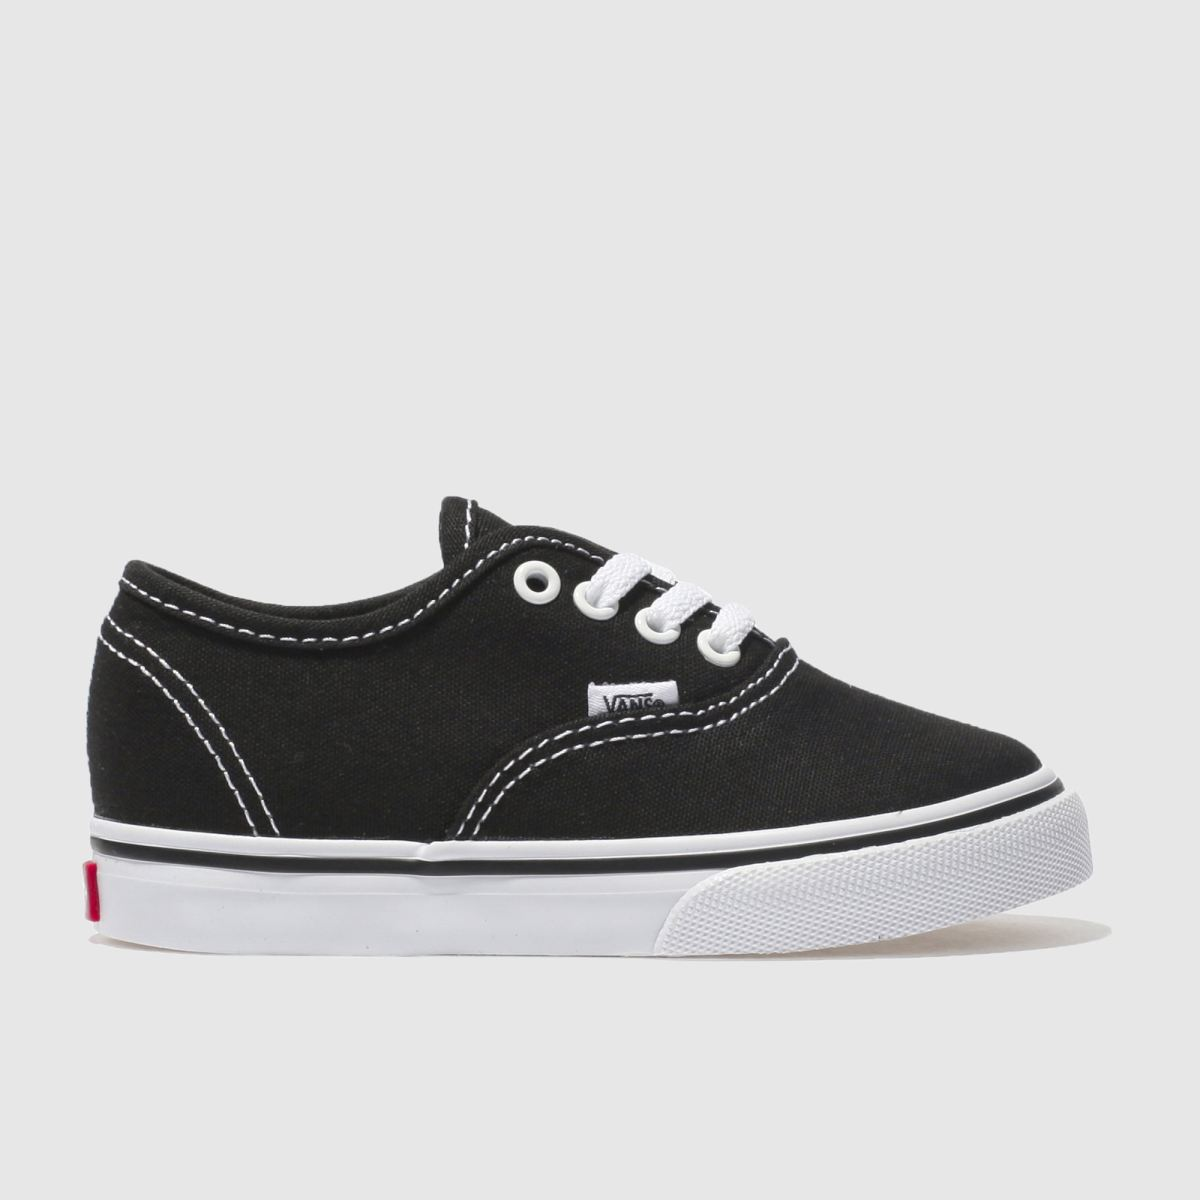 Vans Black & White Authentic Unisex Toddler Toddler